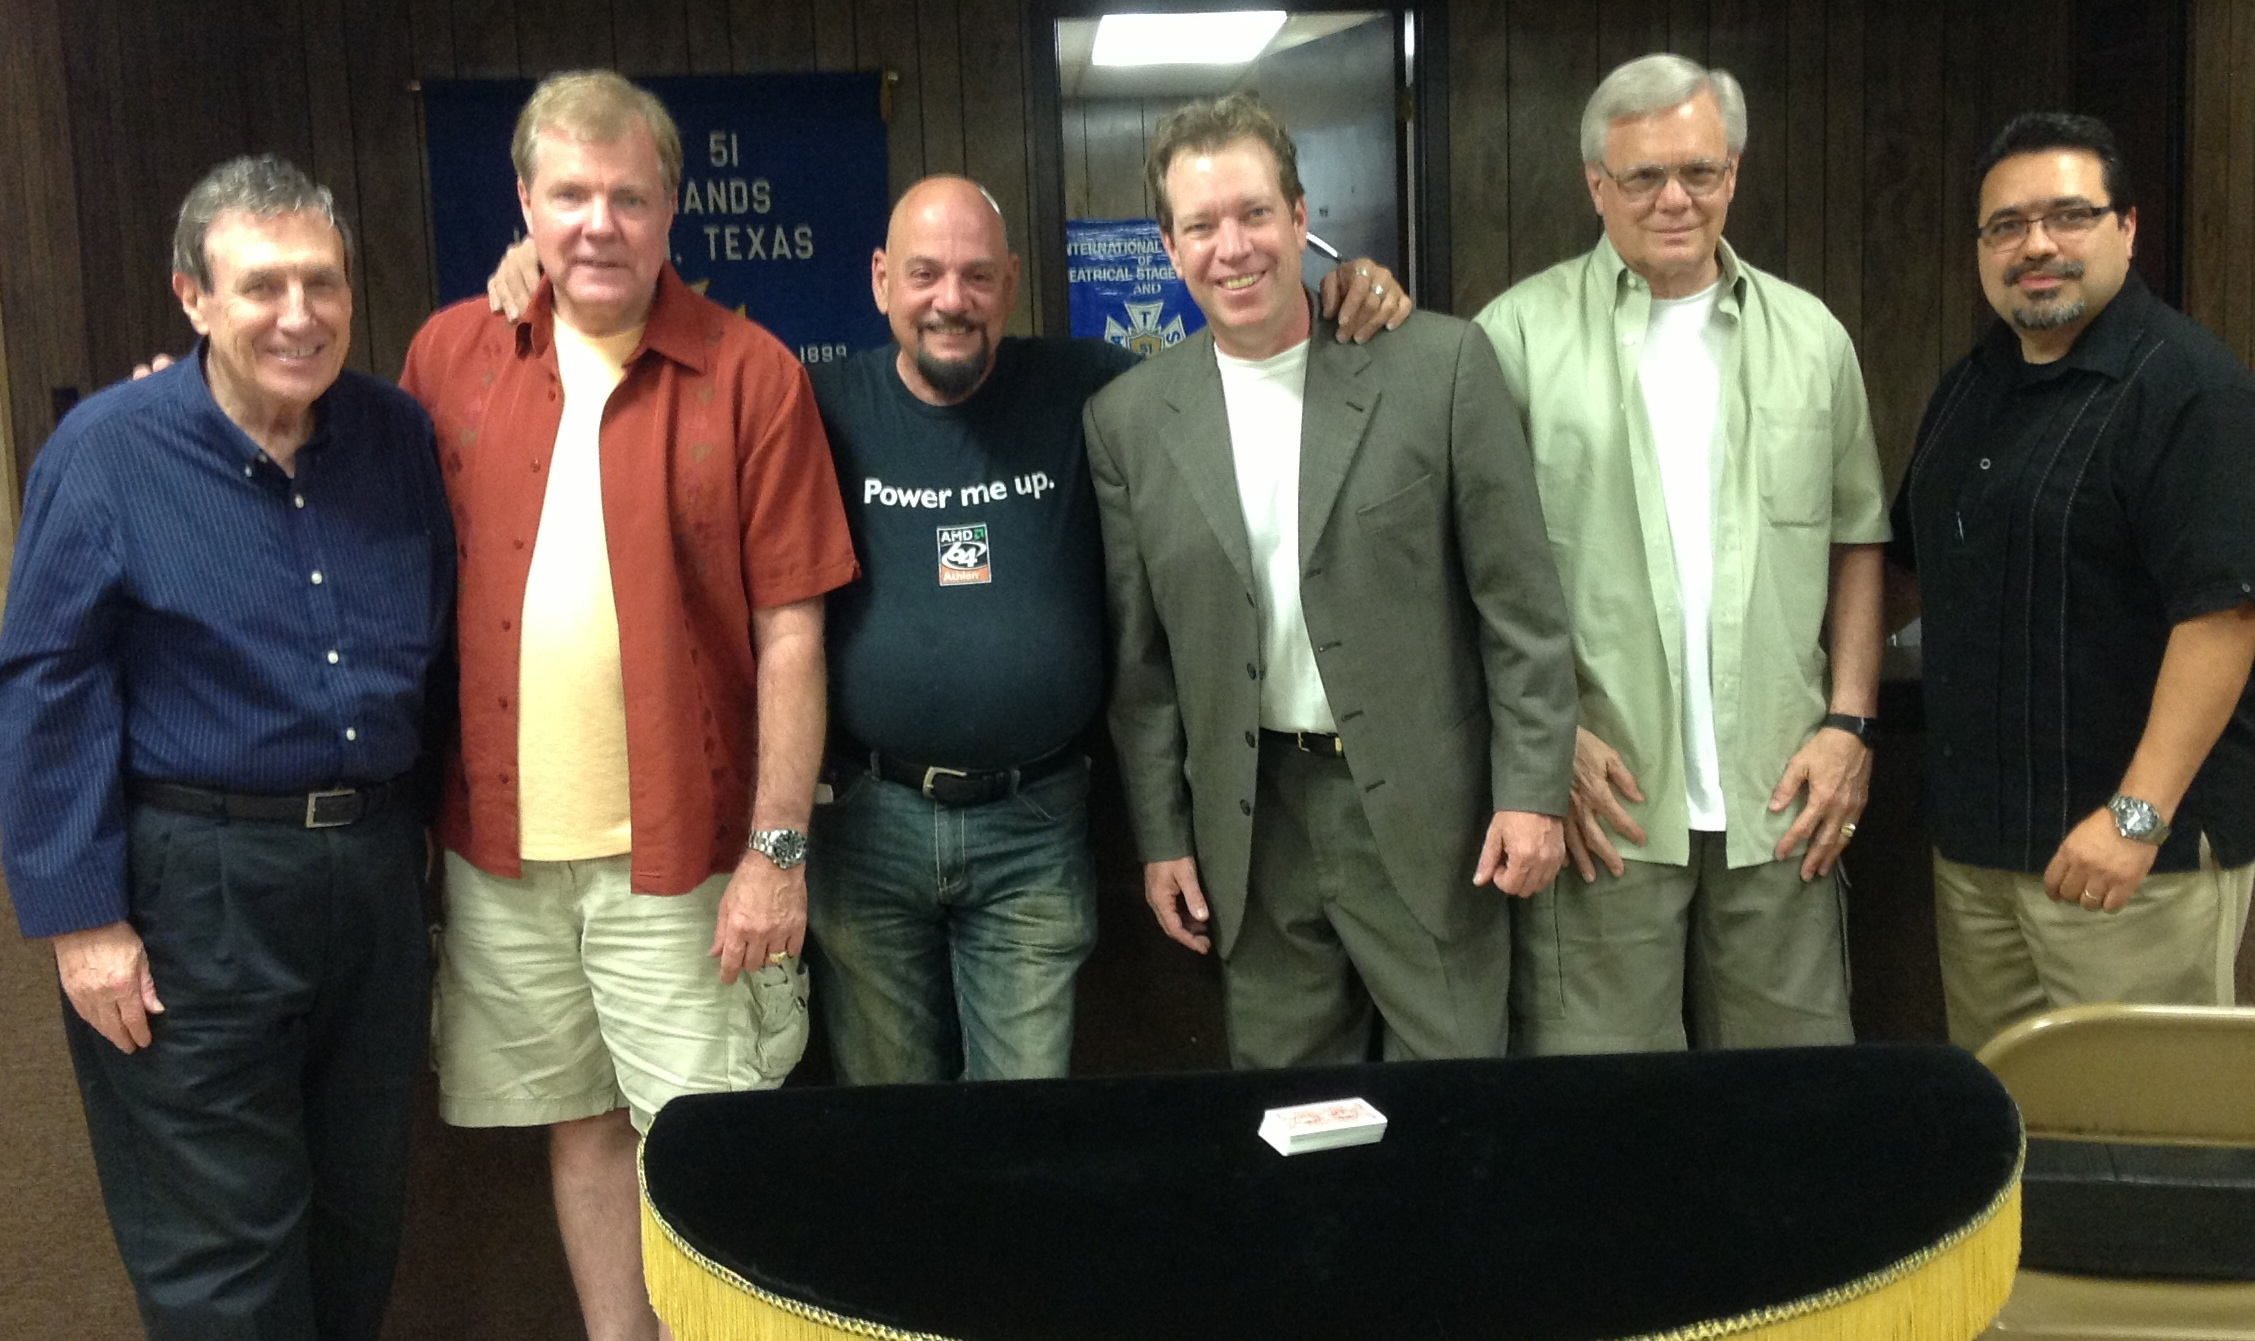 """Some of the """"old crew"""" who worked together when John was a frequent visitor to The Magic Island. From left to right, Scott Hollingsworth (former Entertainment Director), Scott Wells, Phil Kampf, John Shryock, Frank Price and Jamie Salinas."""